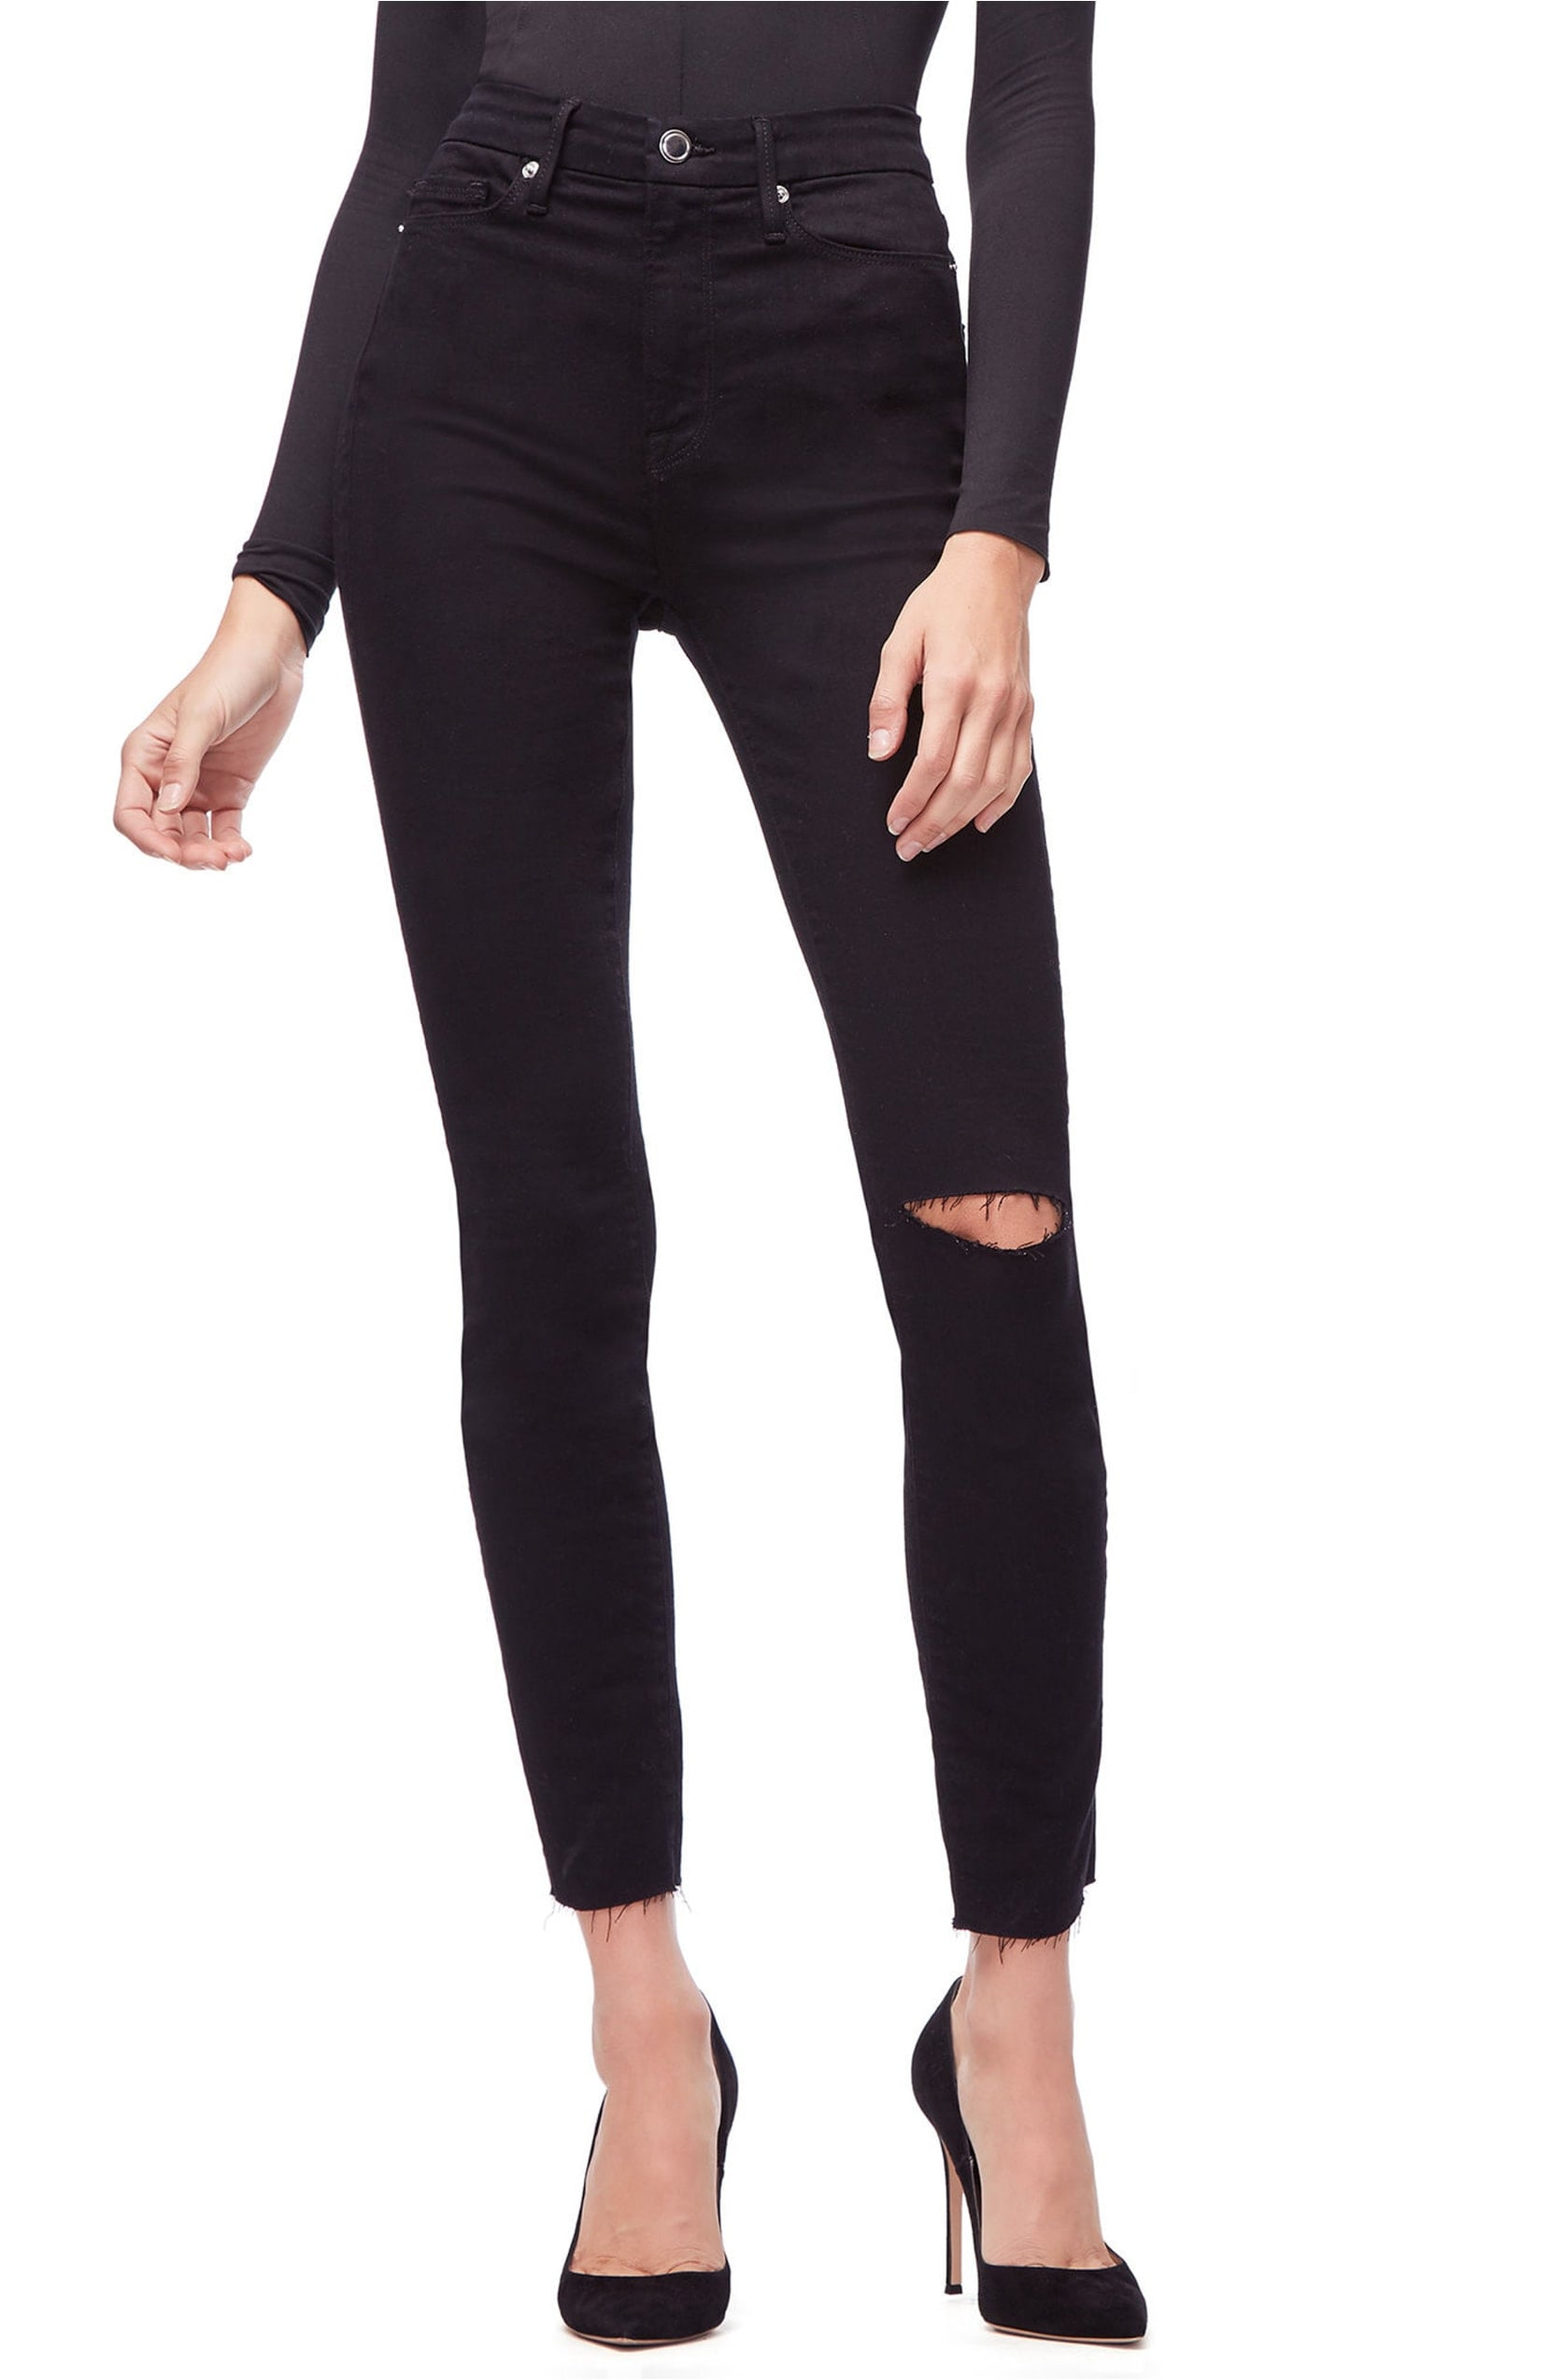 Essentials Girls Skinny Jeans